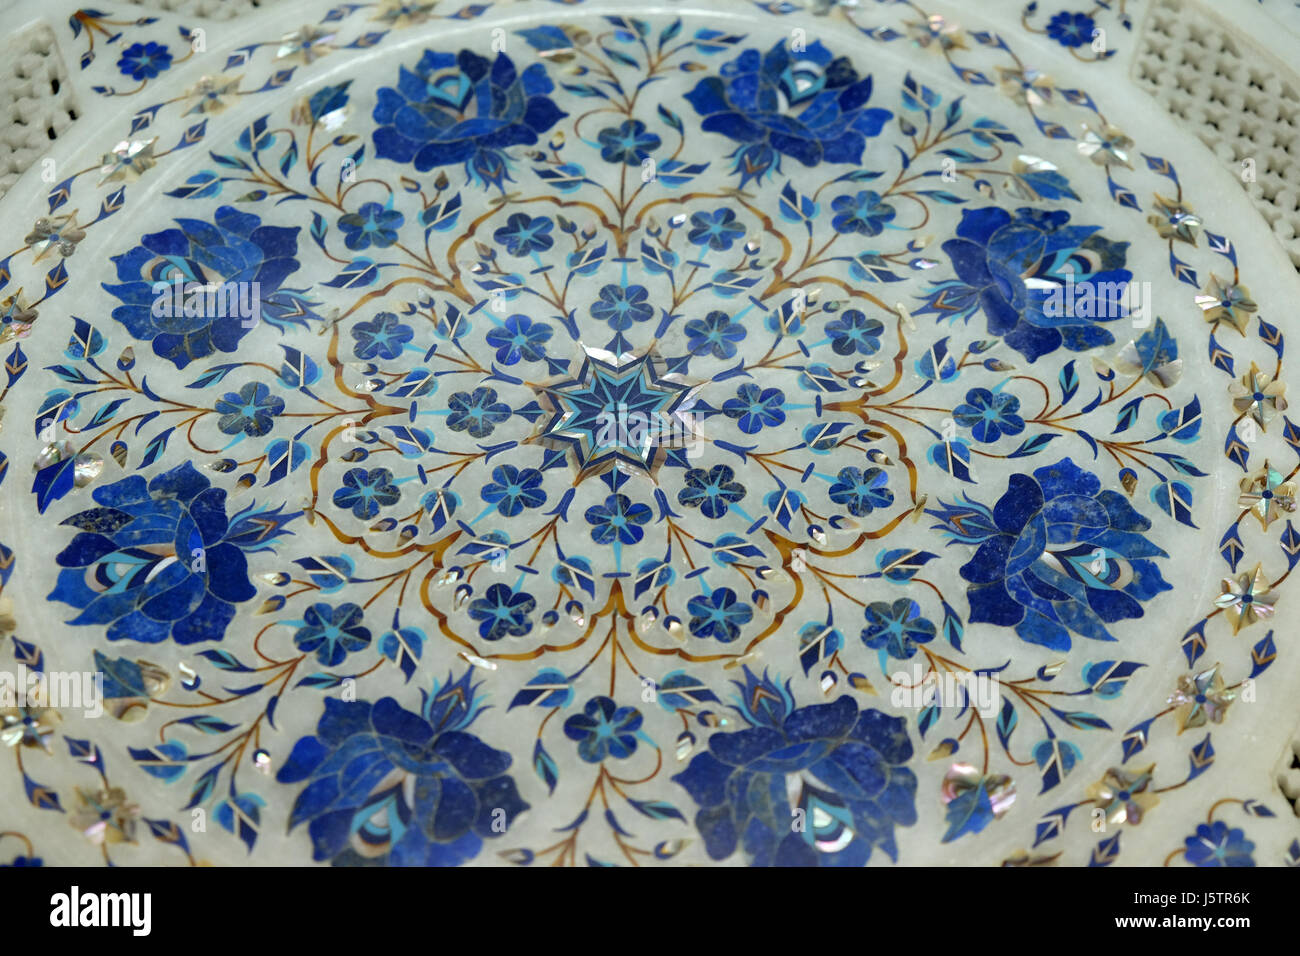 stock photo traditional colorful floral marble tabletops for sale in agra uttar pradesh india on february 14